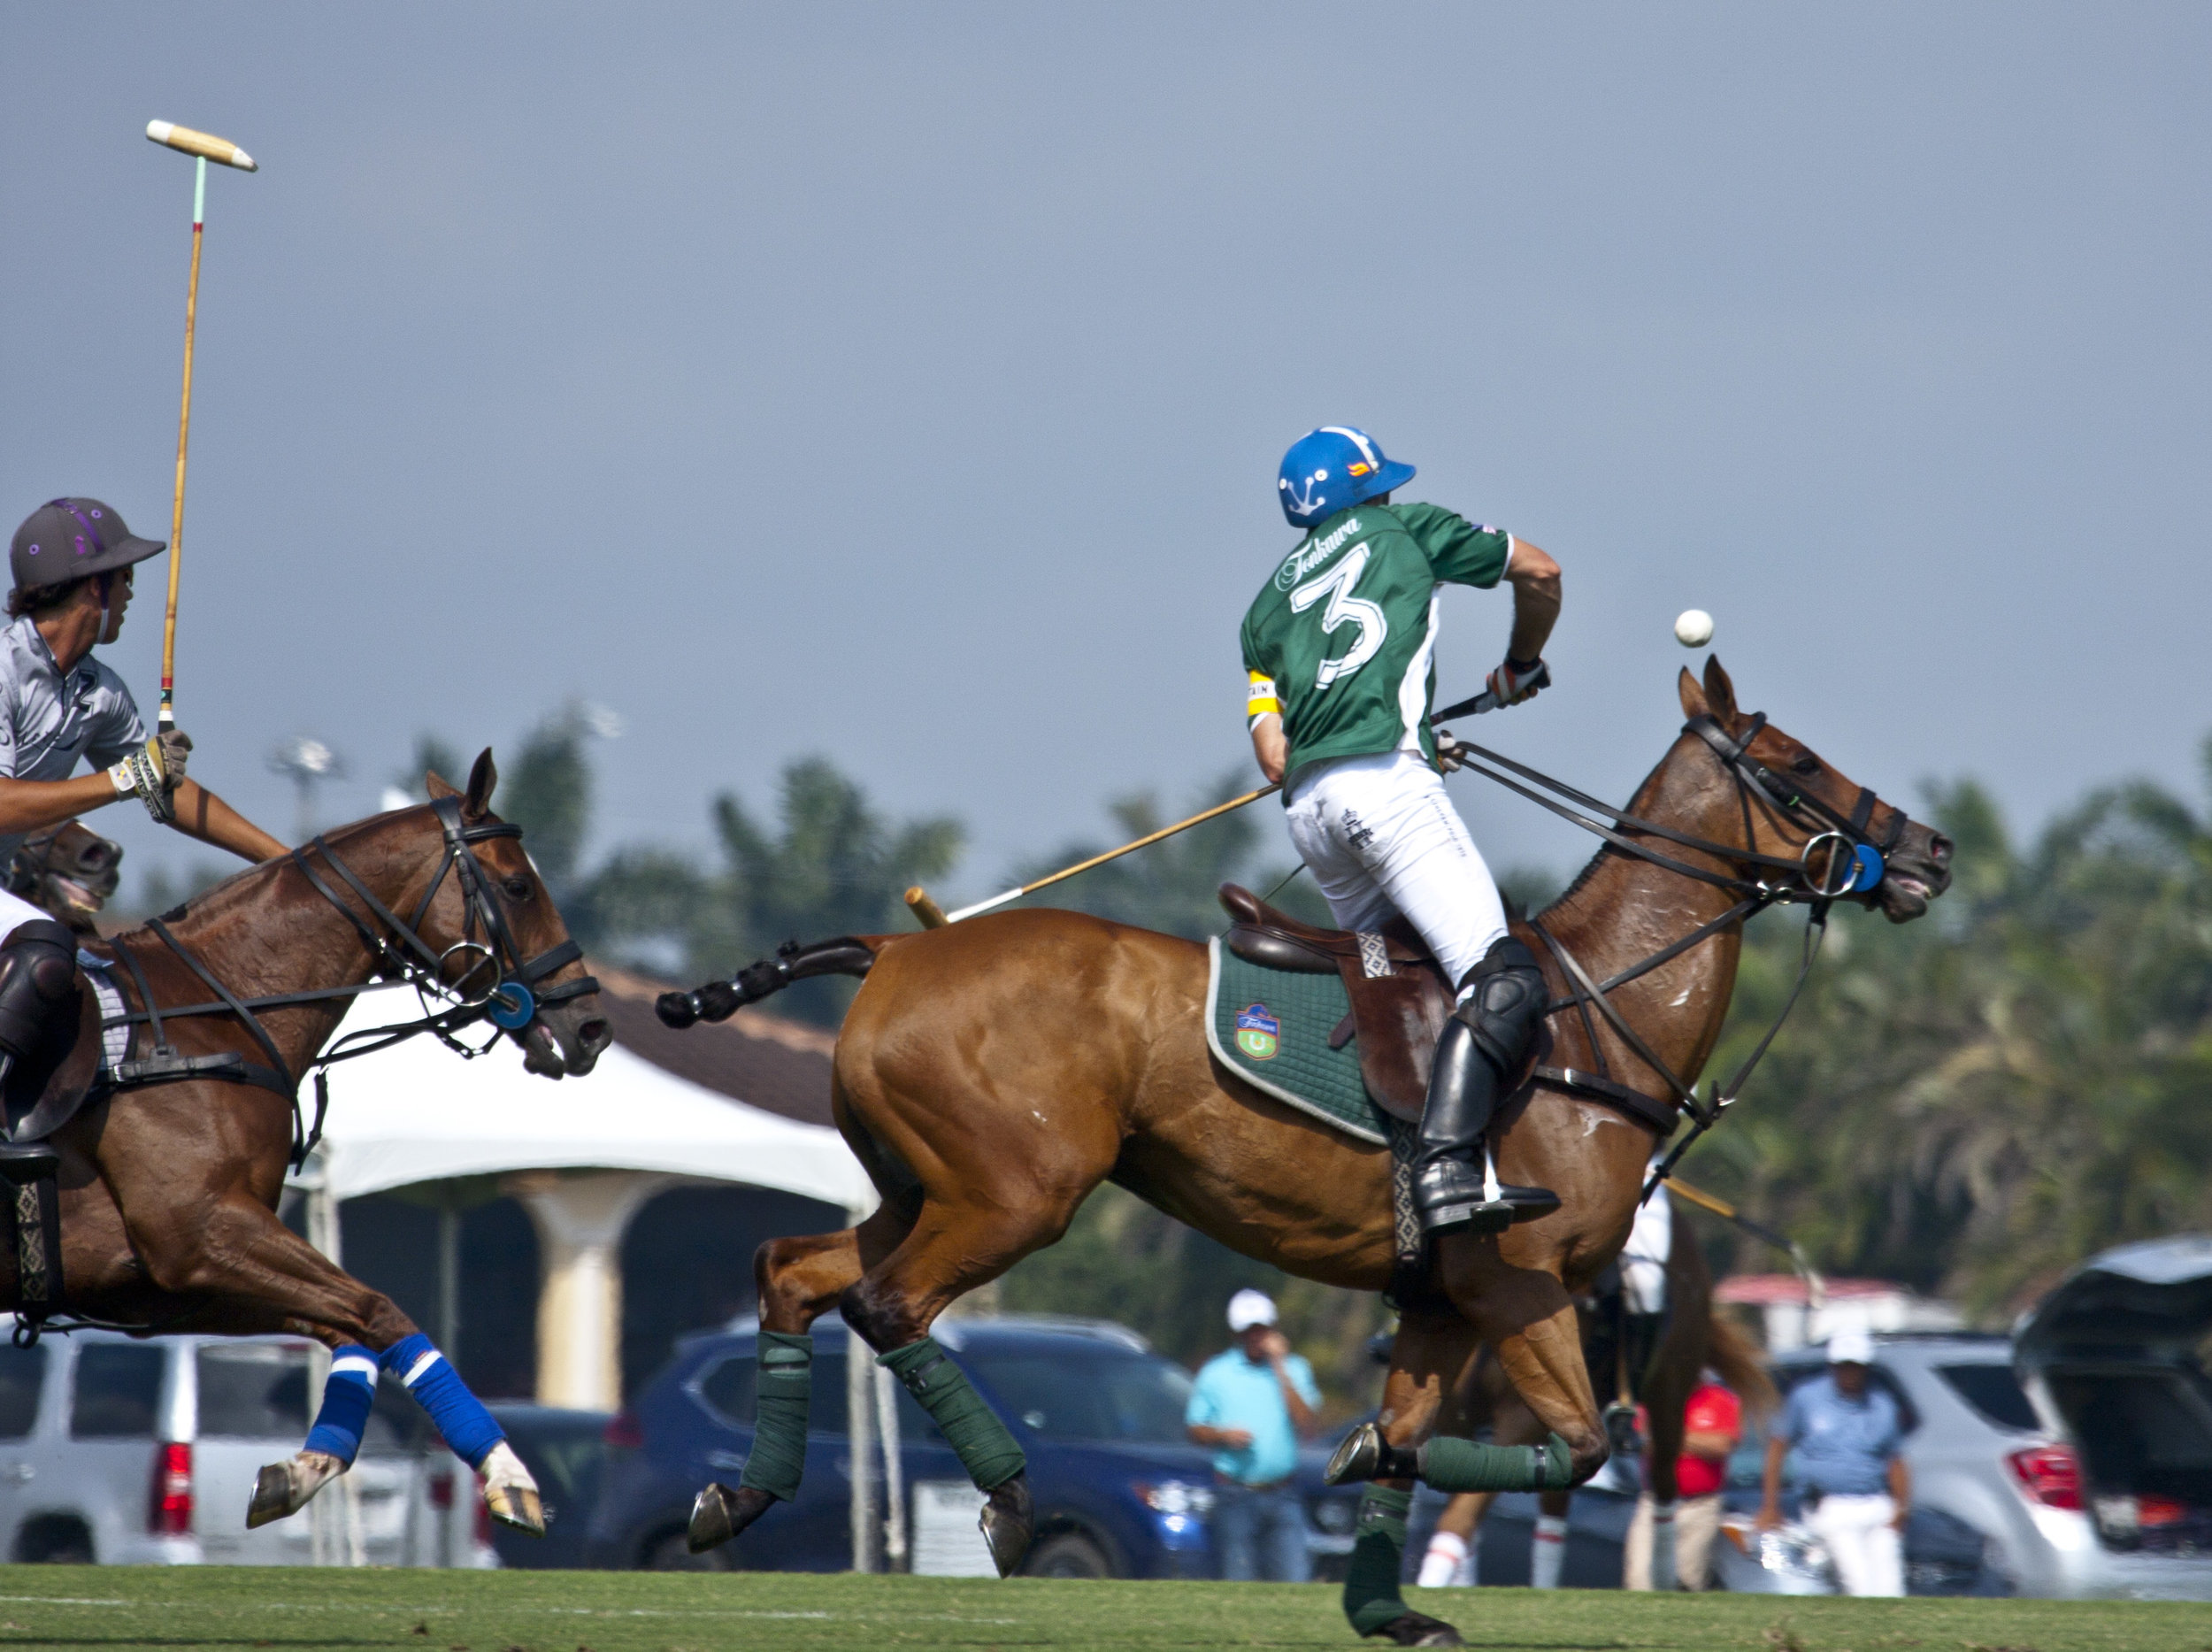 Sapo Caset of Tonkawa works the ball out of the air